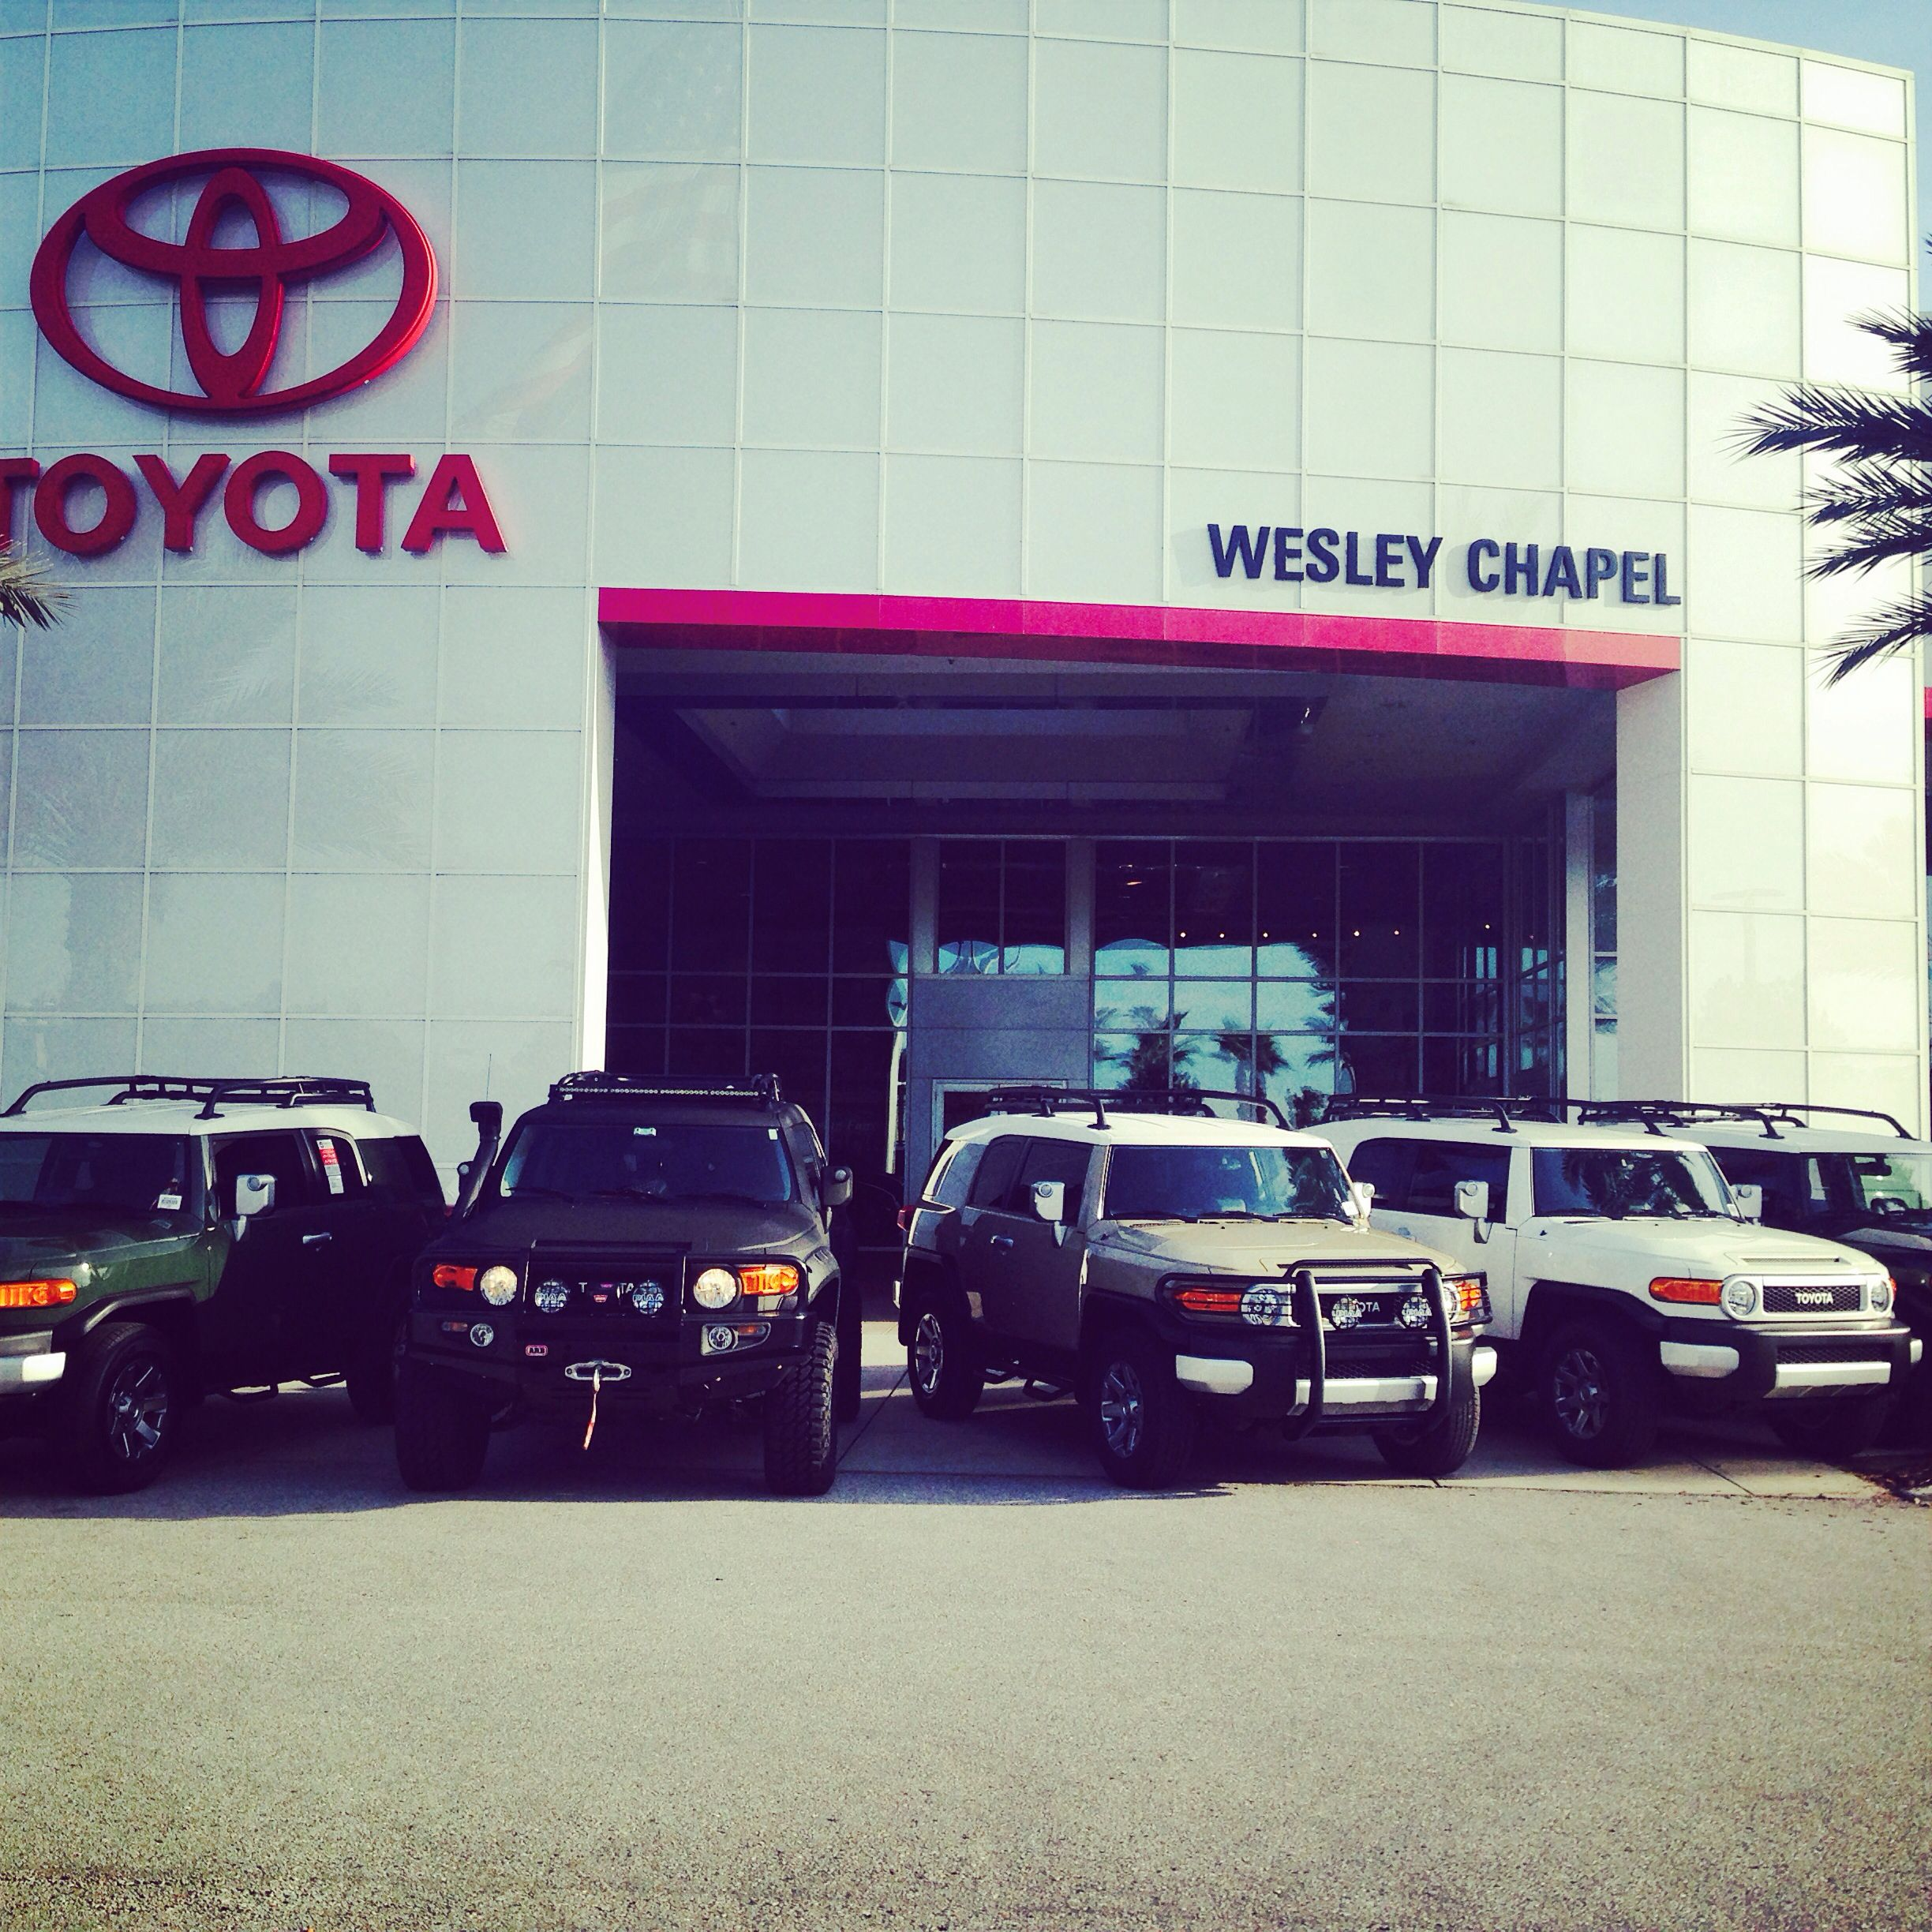 Fj Cruisers Here At Wesley Chapel Toyota